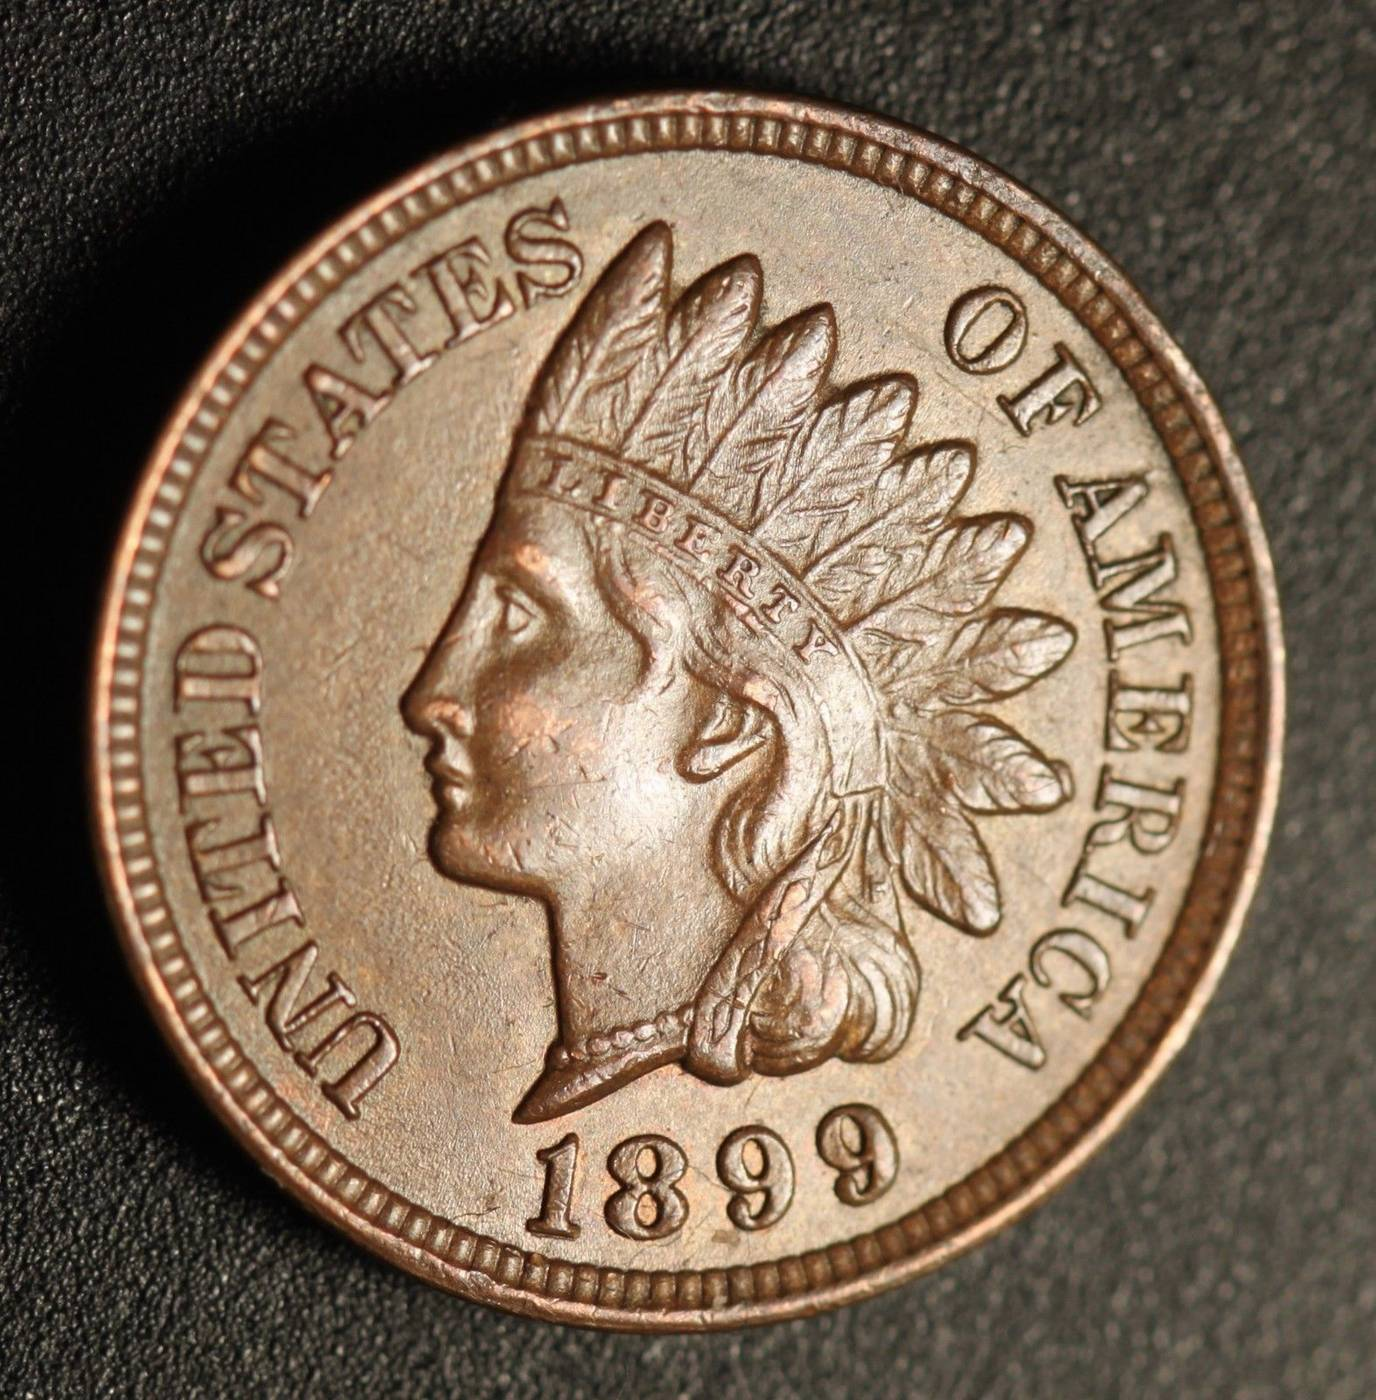 1899 RPD-035 - Indian Head Penny - Photo by Ed Nathanson